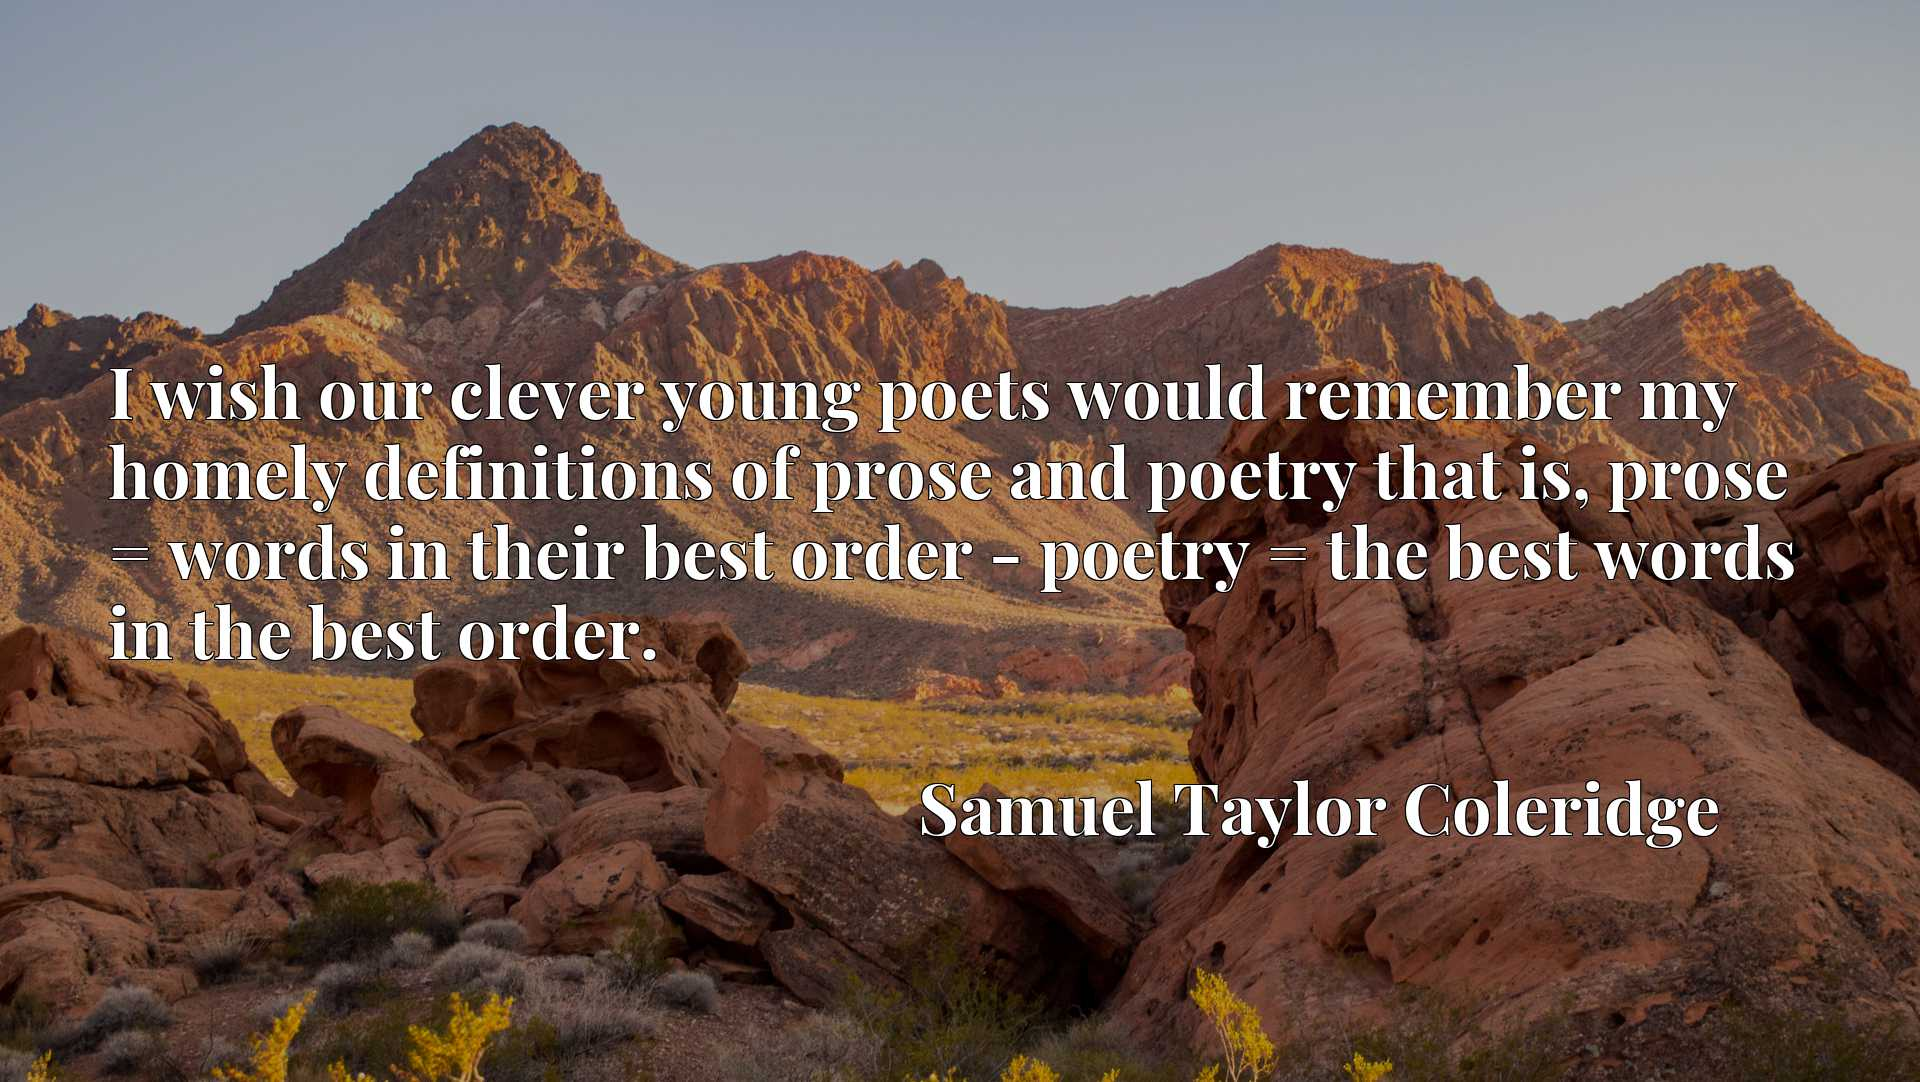 I wish our clever young poets would remember my homely definitions of prose and poetry that is, prose = words in their best order - poetry = the best words in the best order.